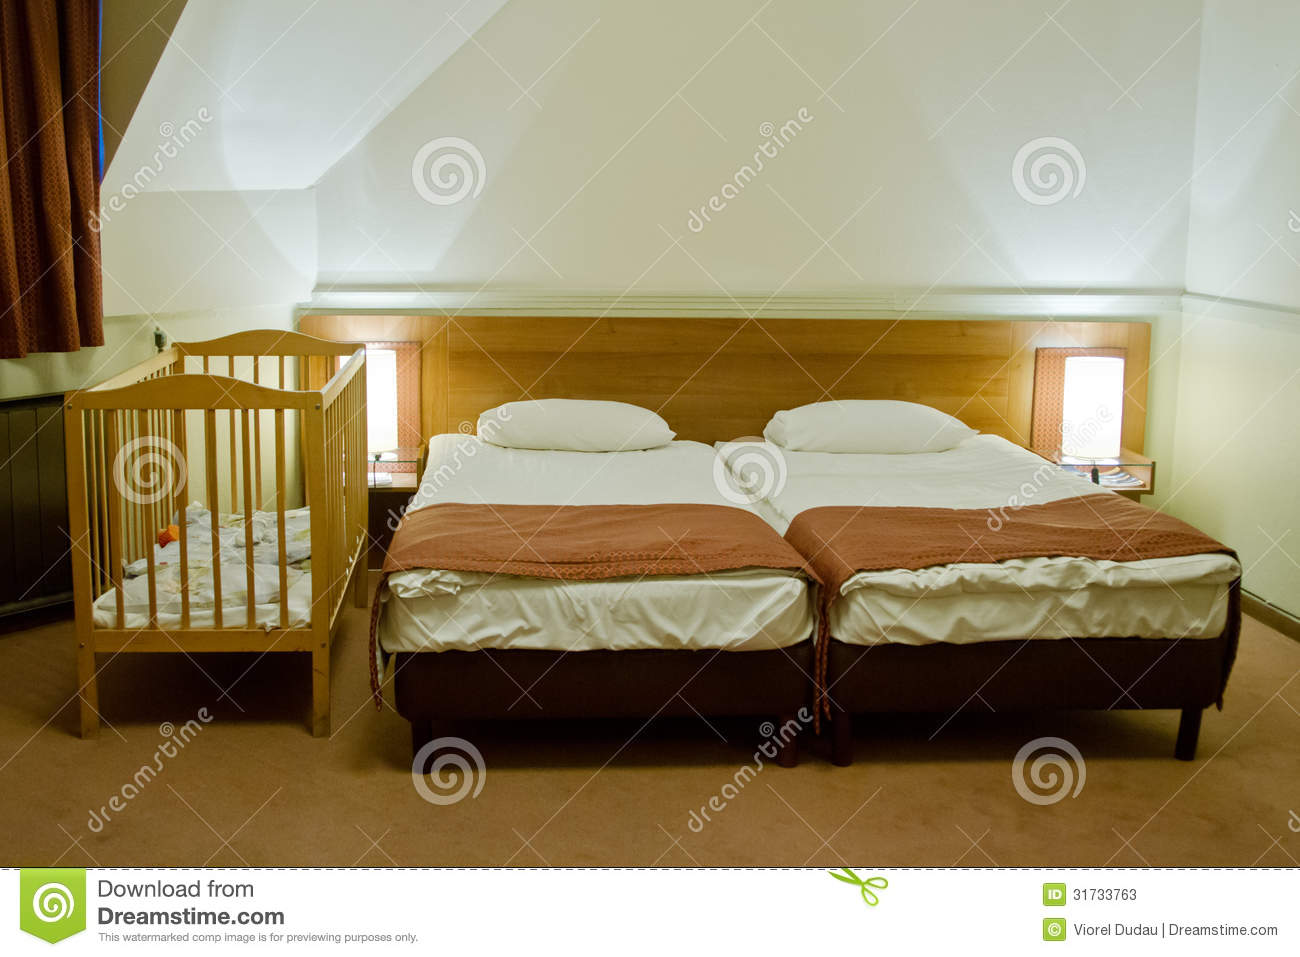 Baby bed next to bed - Hotel Room With Baby Cot